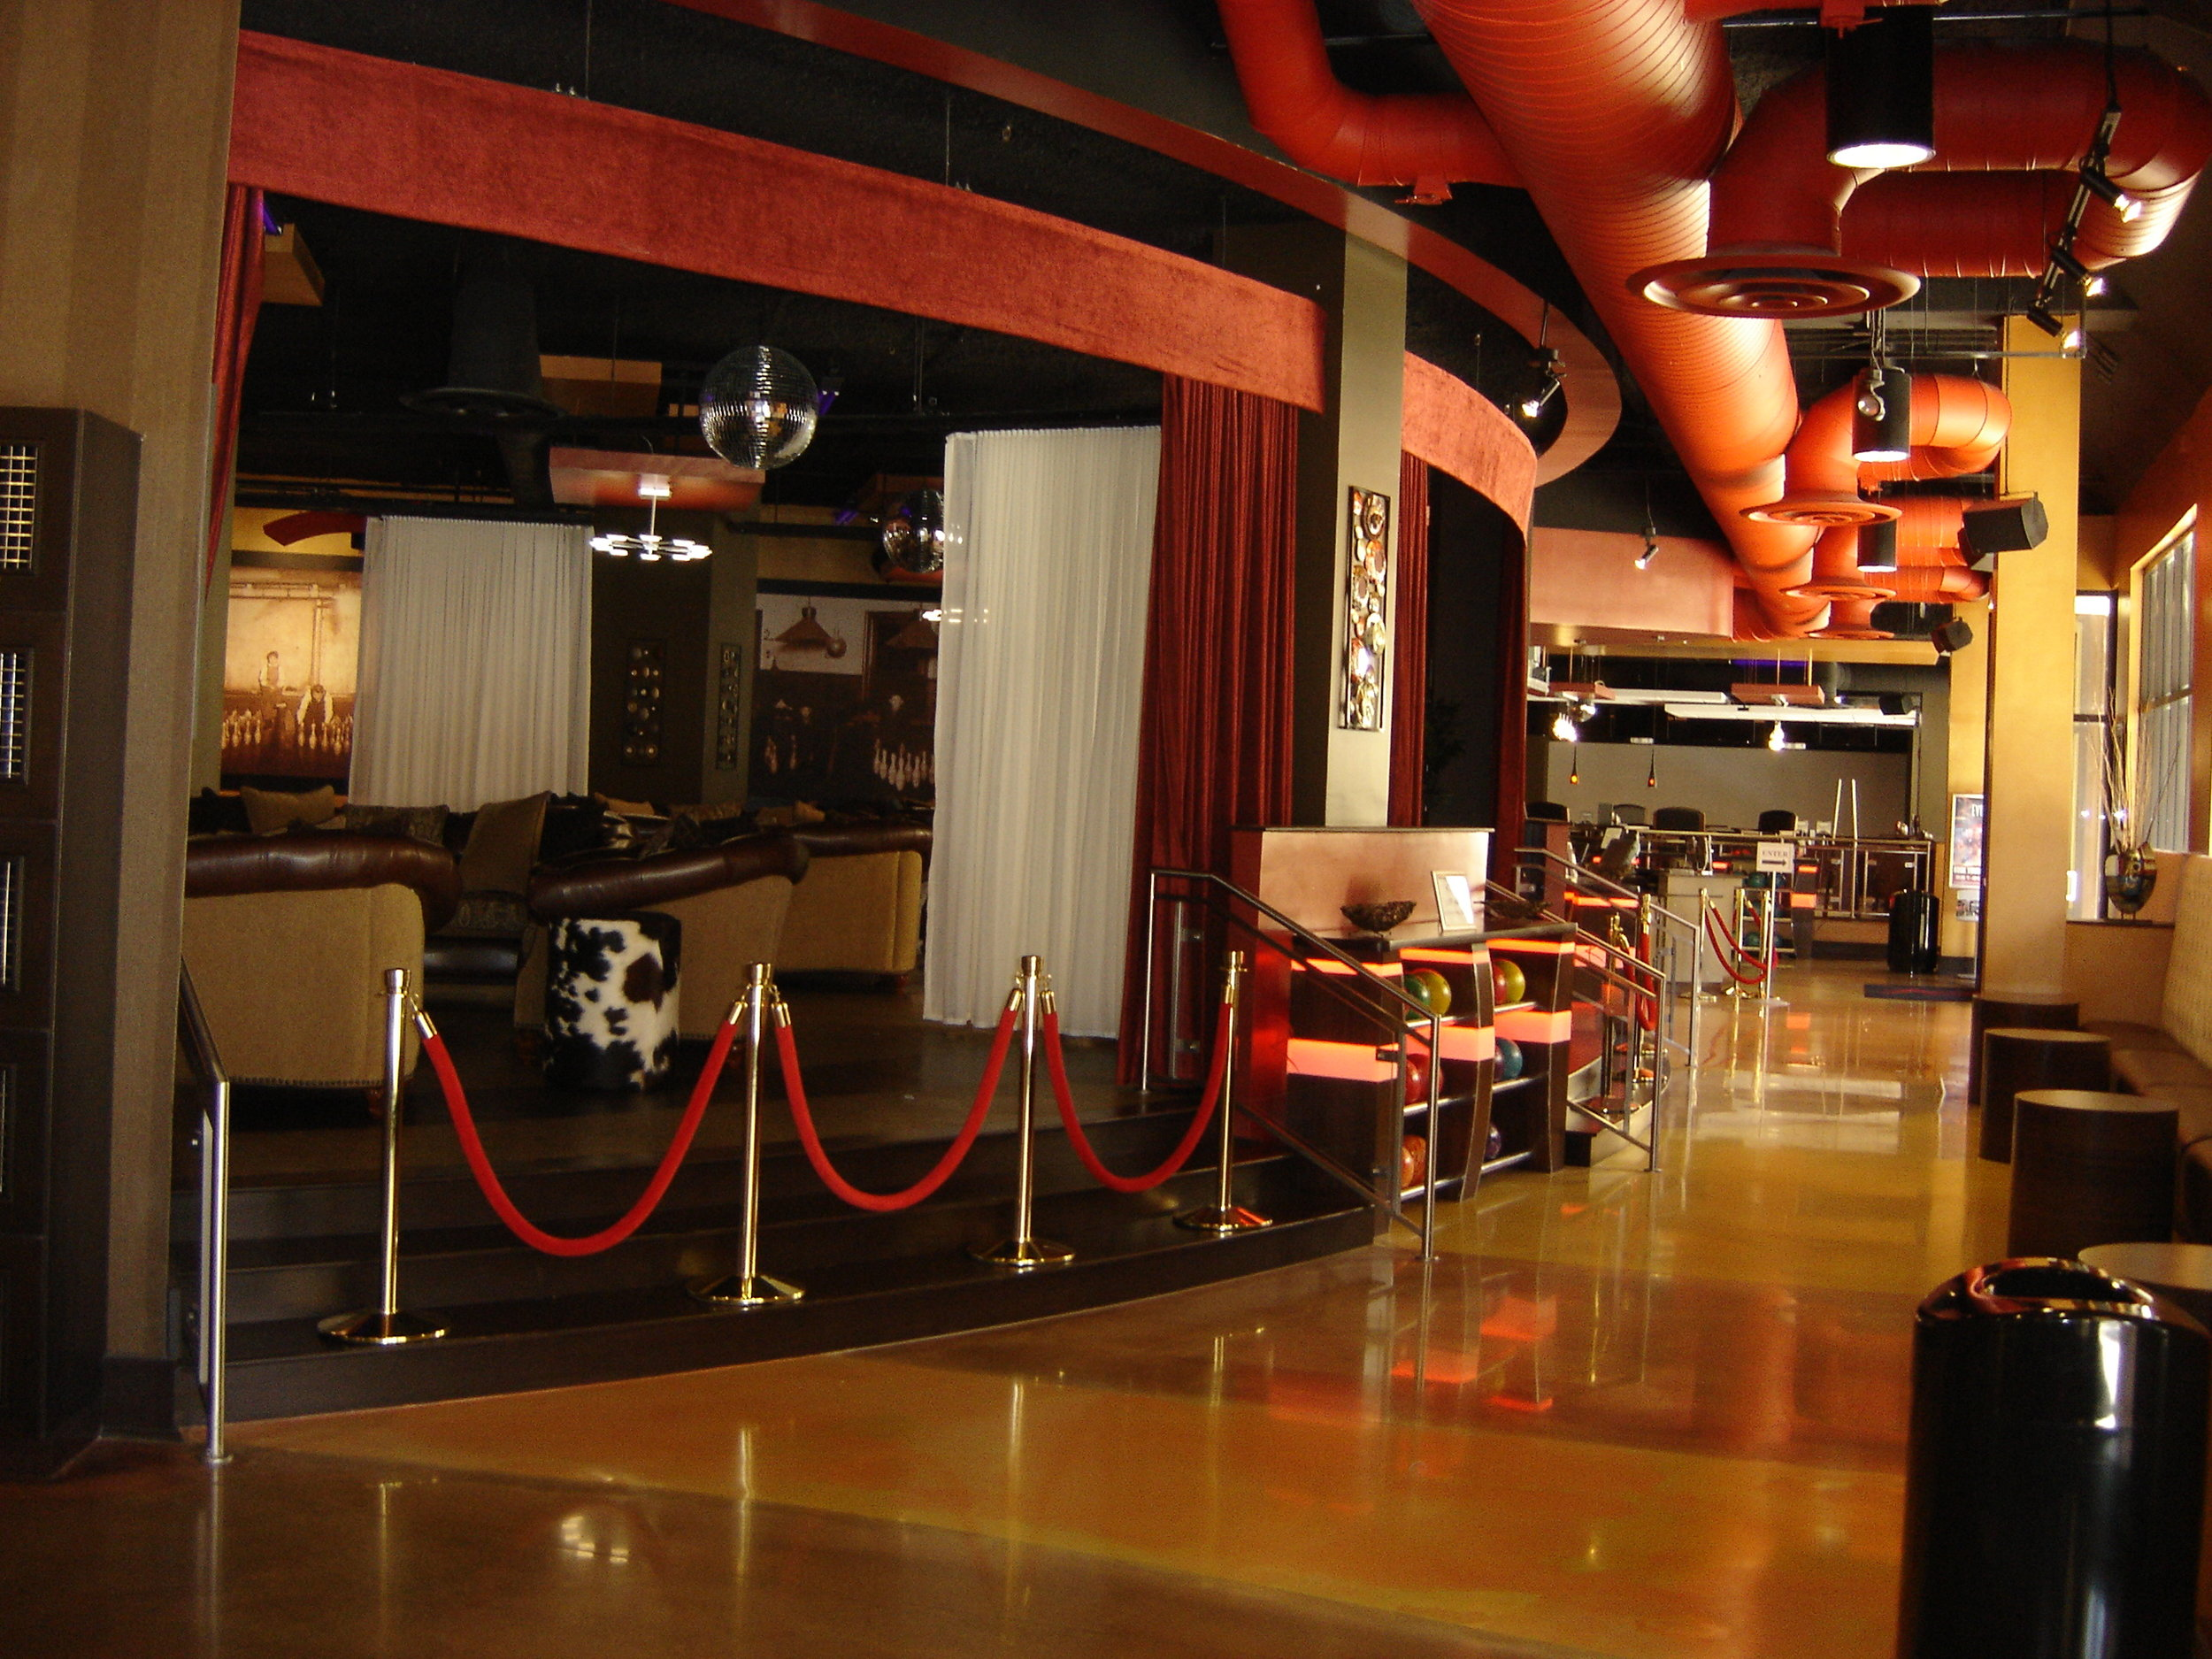 ADW-Entertainment-Revolutions-City-Place-West-Palm-Beach-FL-2.jpg